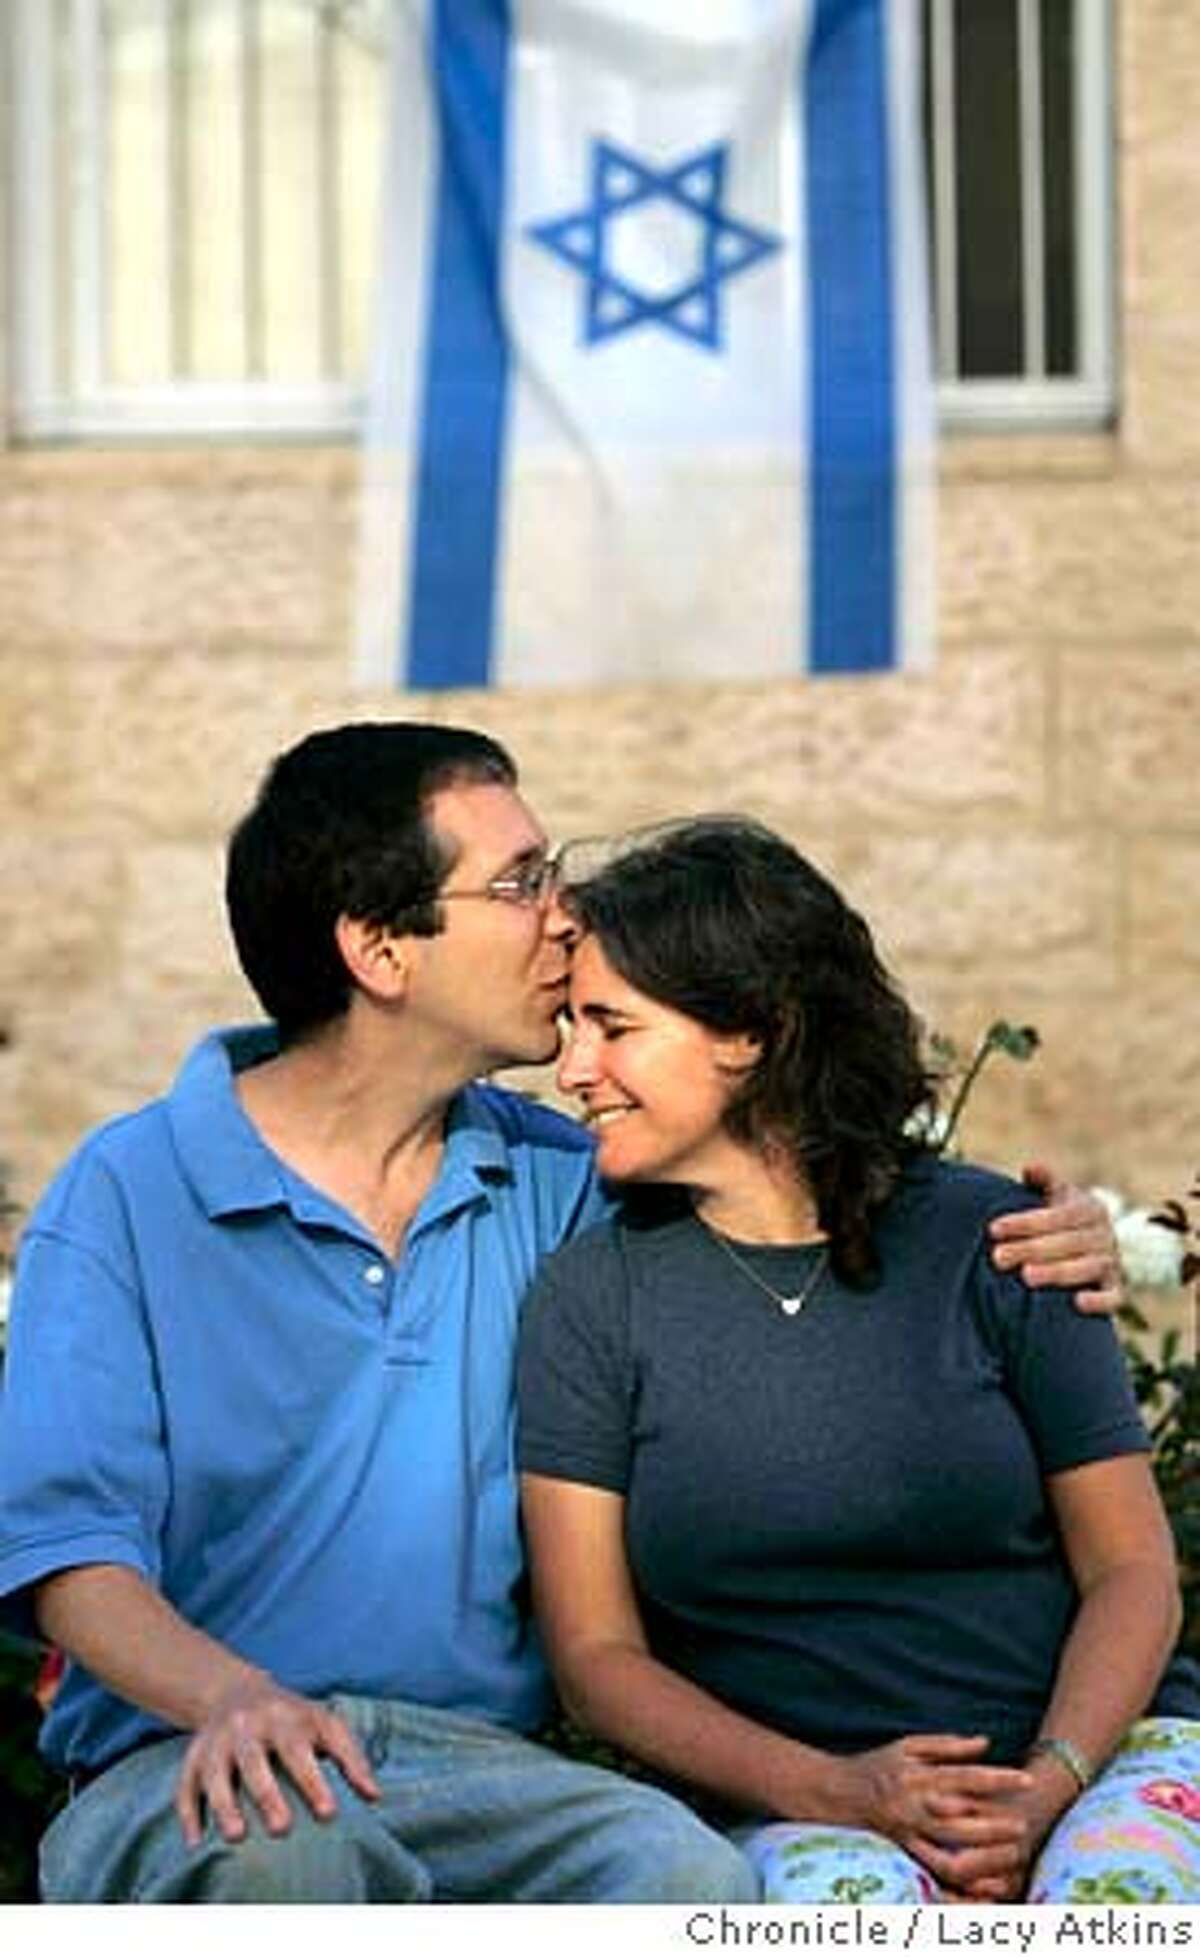 Brian Blum with his wife Jody, at home in Jerusalem, June 16, 2005, in Israel. Brian is from Berkeley and followed his roots to Israel. He's just a normal guy with the exception that his cousin, Marla Bennett was killed in a cafe by a suicide bomber and a bus blow-up along his jogging route moments before he was there. Photographer Lacy Atkins